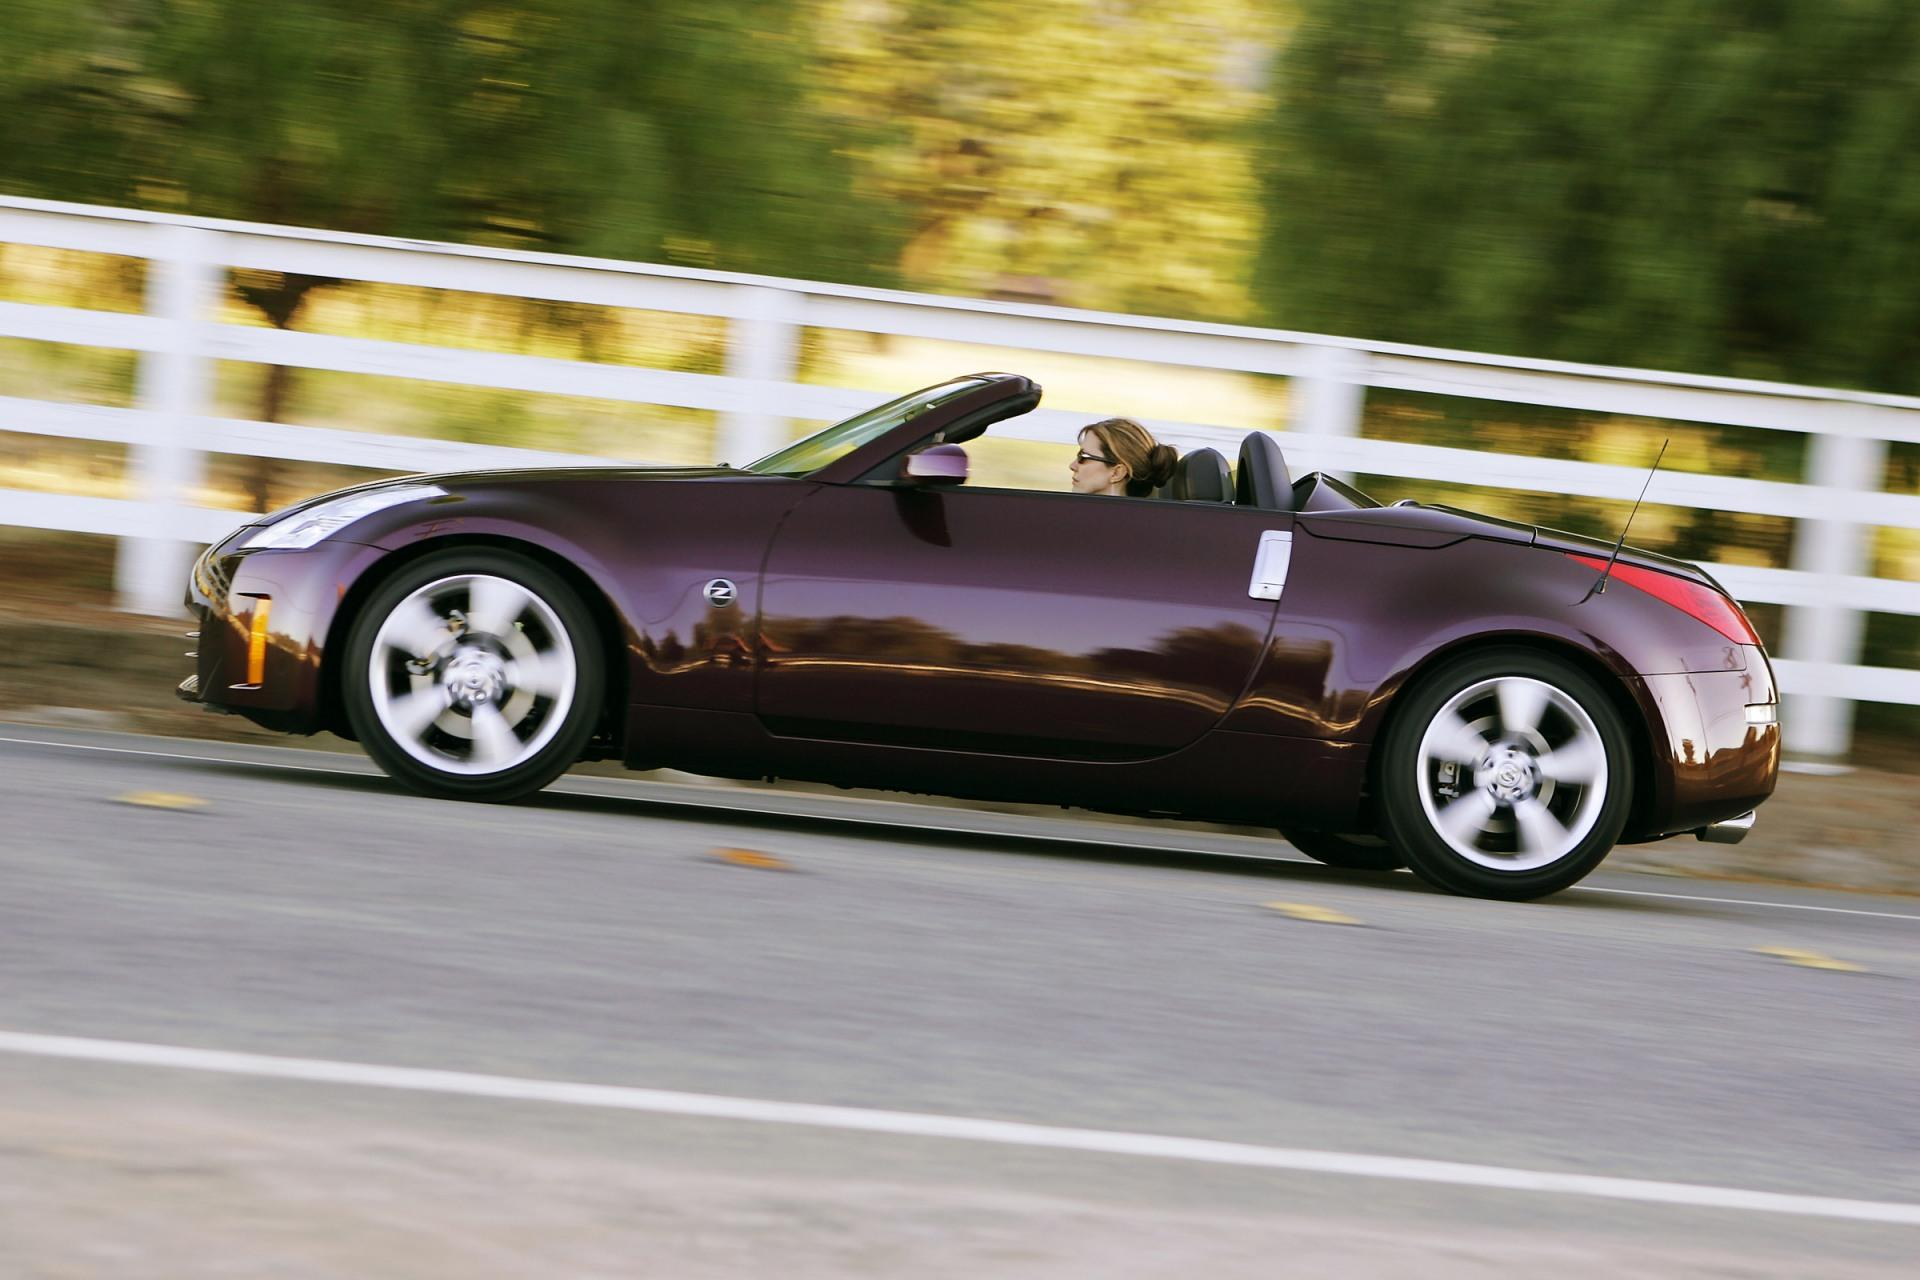 2009 Nissan 350Z News and Information | conceptcarz.com